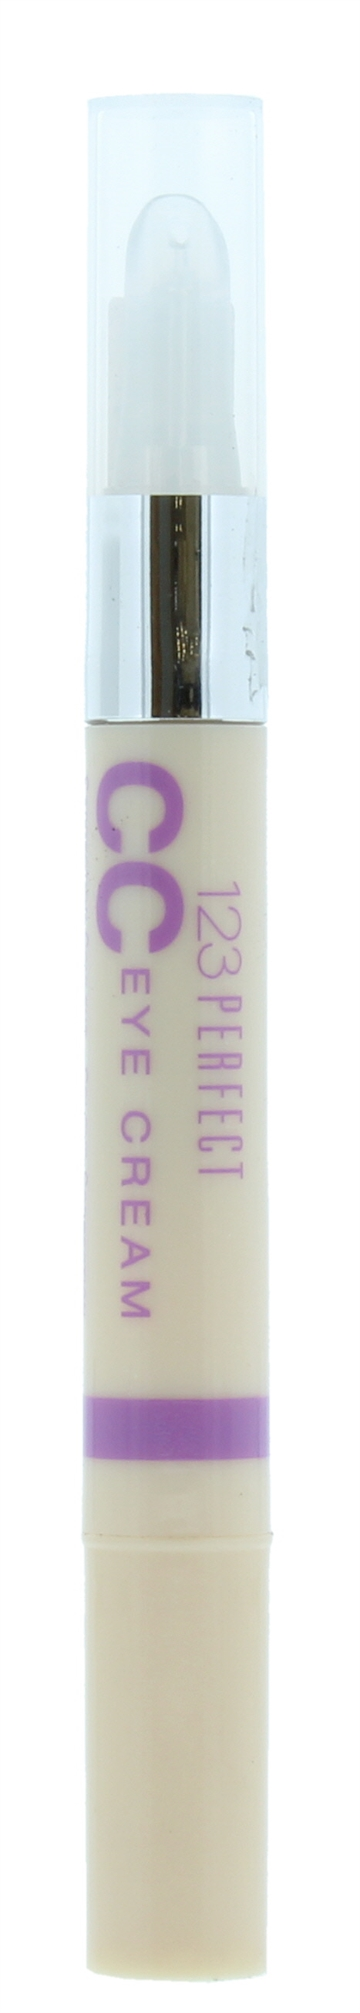 Bourjois 123 Perfect Cc Eye Cream Concealer Ivory 021